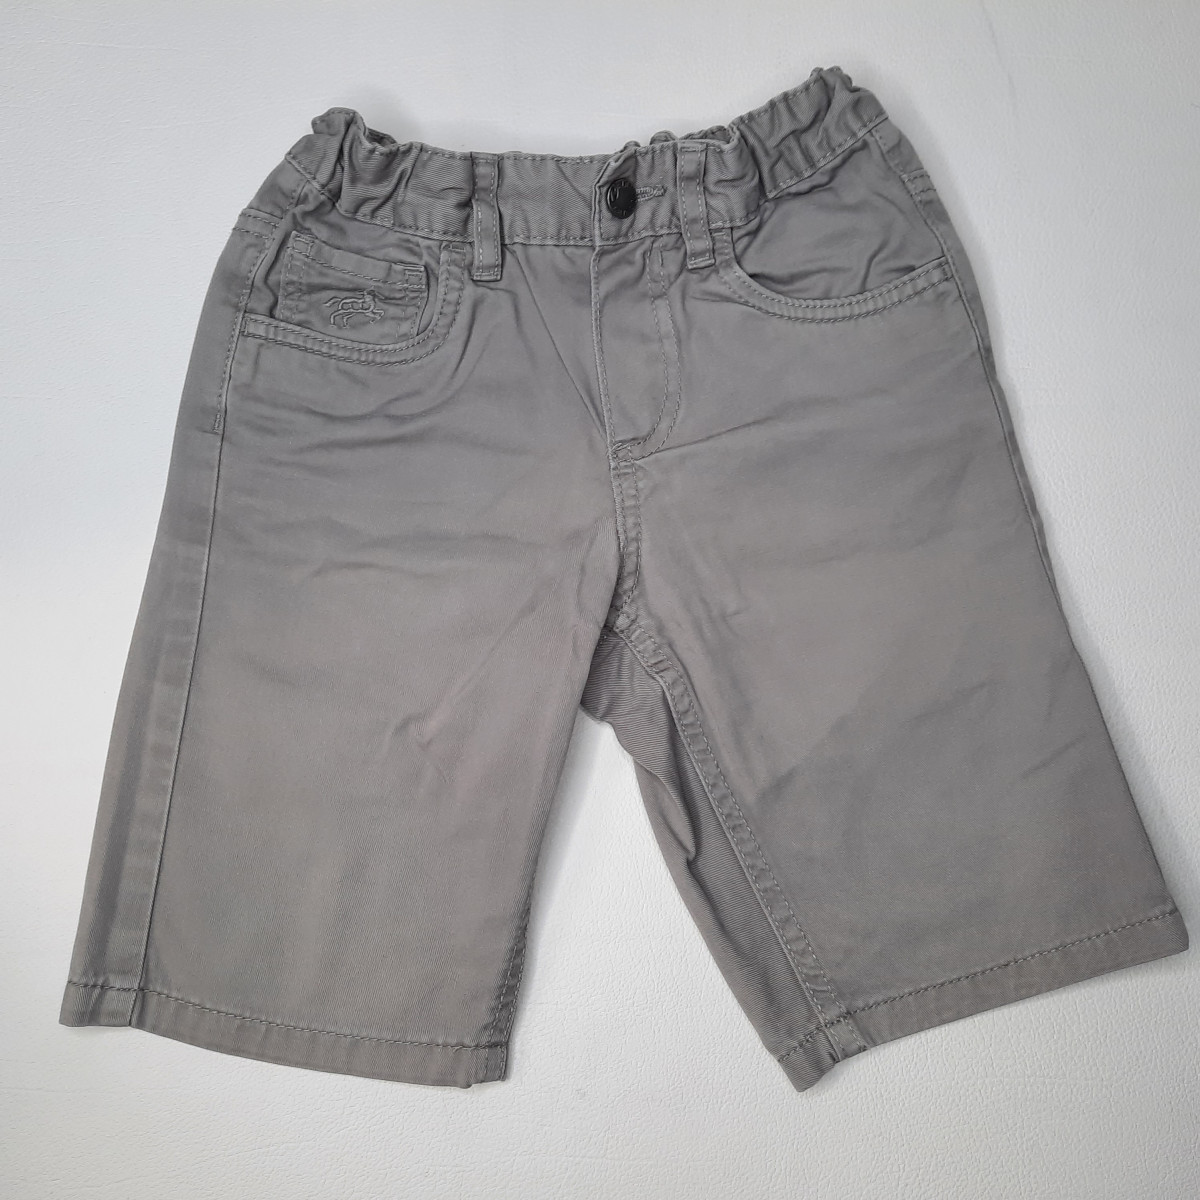 Shorts, Bermudas - photo 6